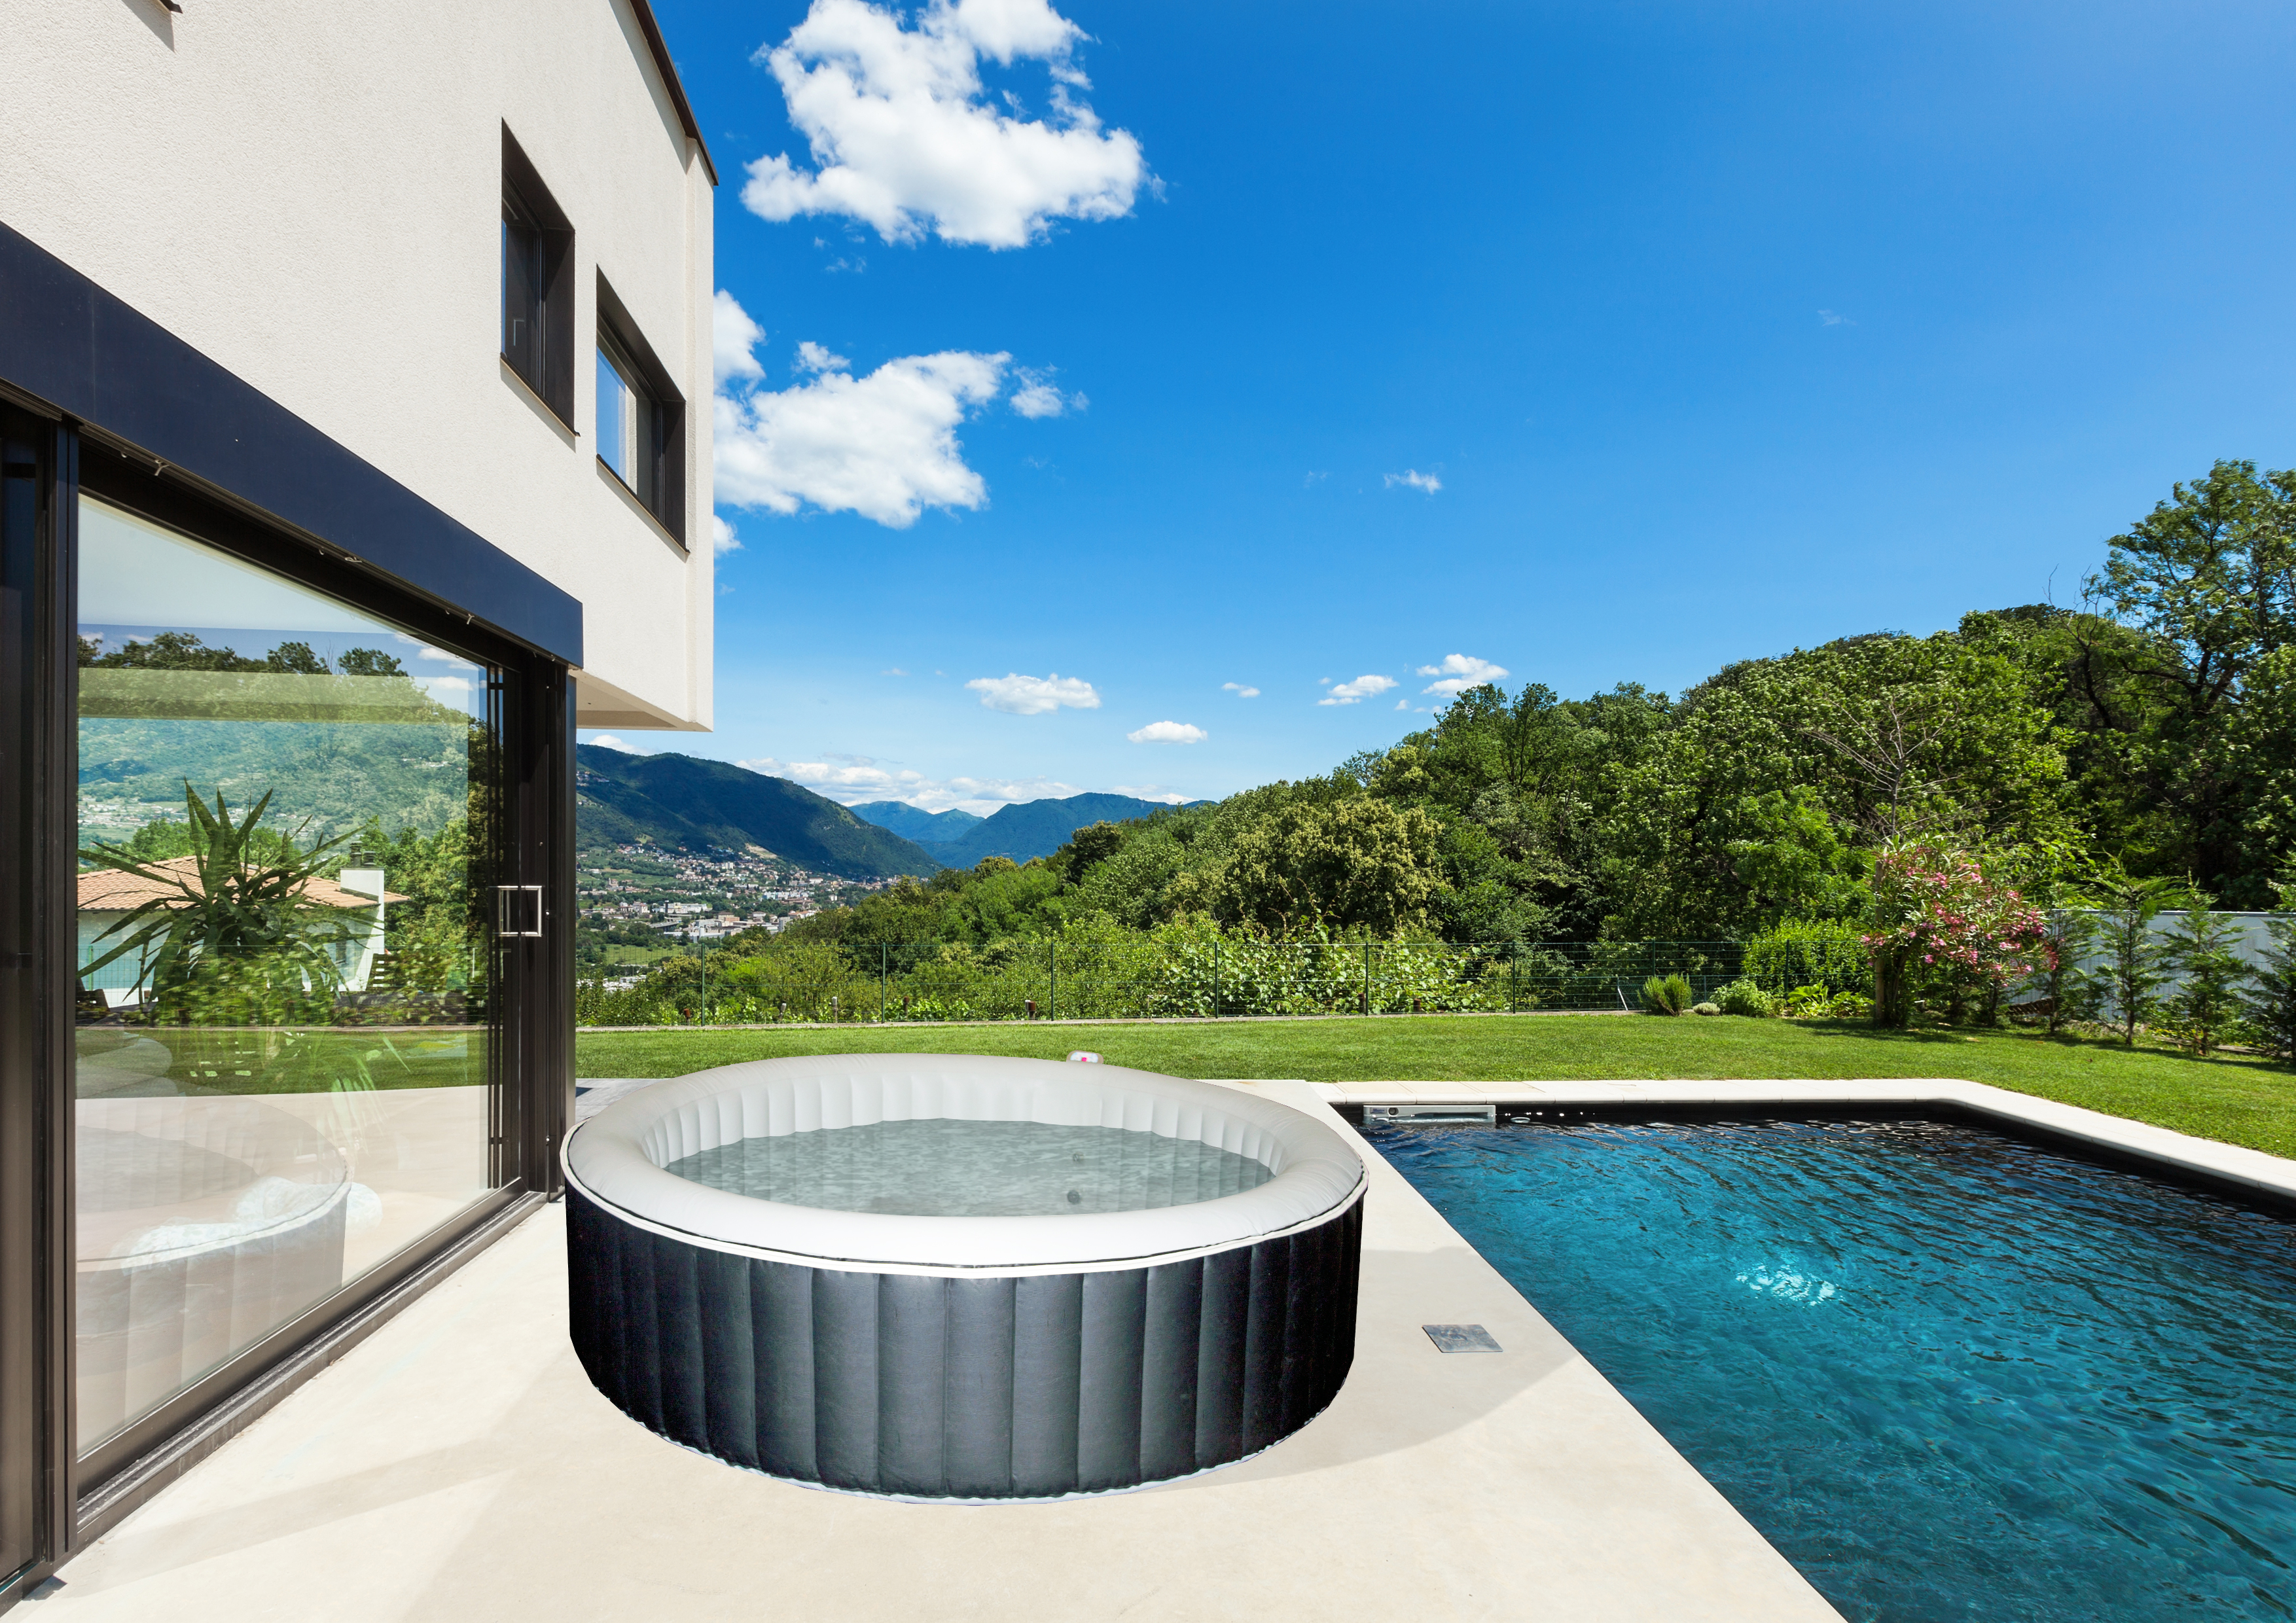 Spa gonflable rond - 3/4 places - LUSH